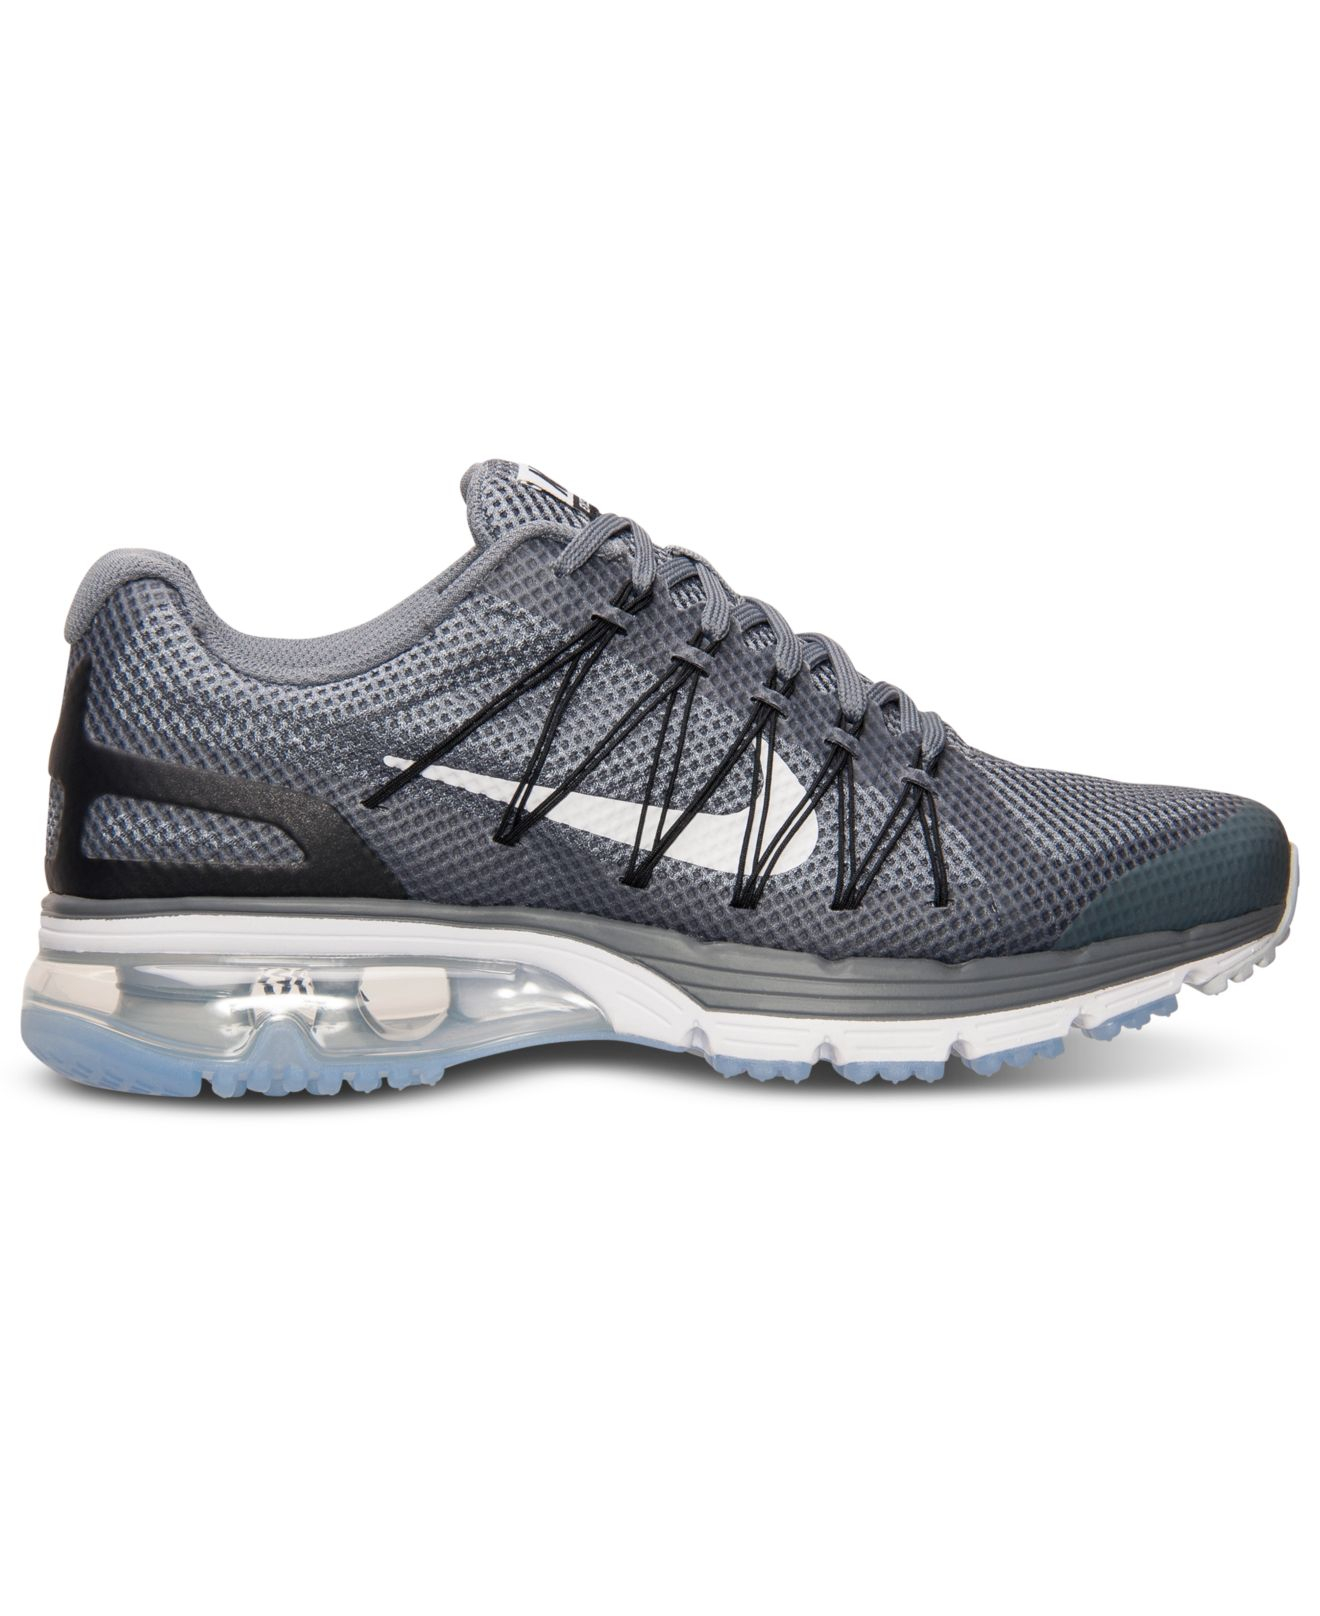 nike air max excellerate 3 mens running shoe $120 cheesesteak